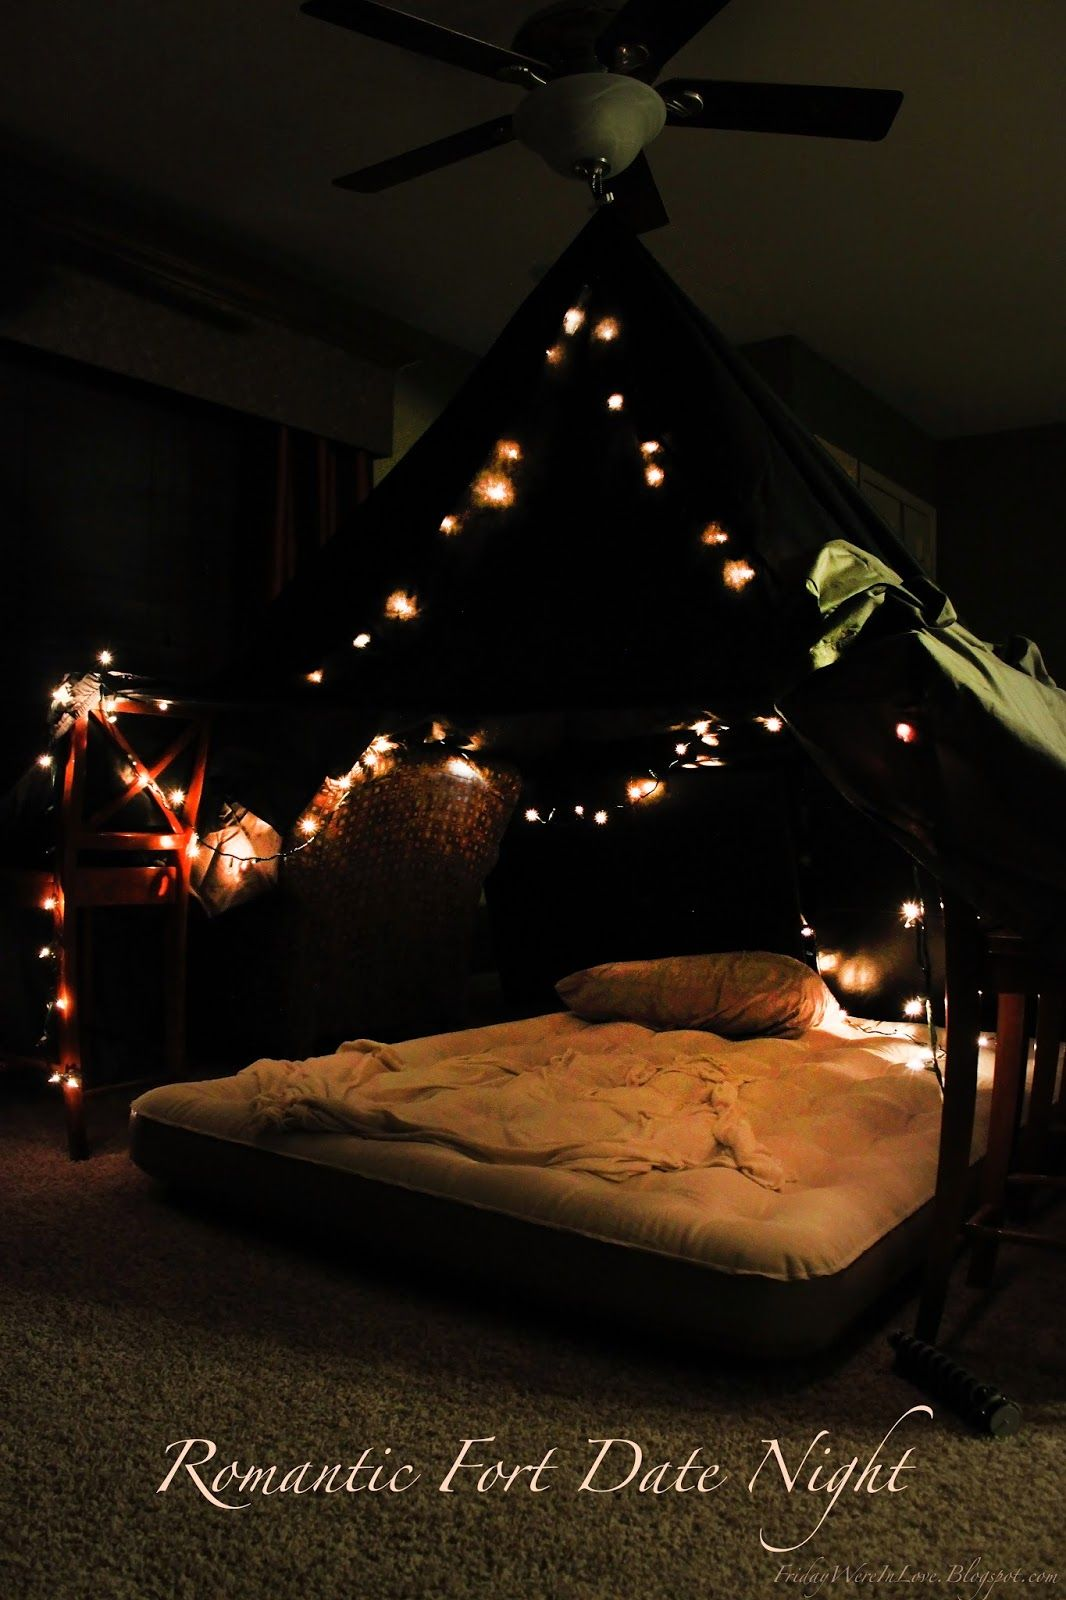 Romantic bedroom at night - 12 Months Of Dates January Romantic Fort Night